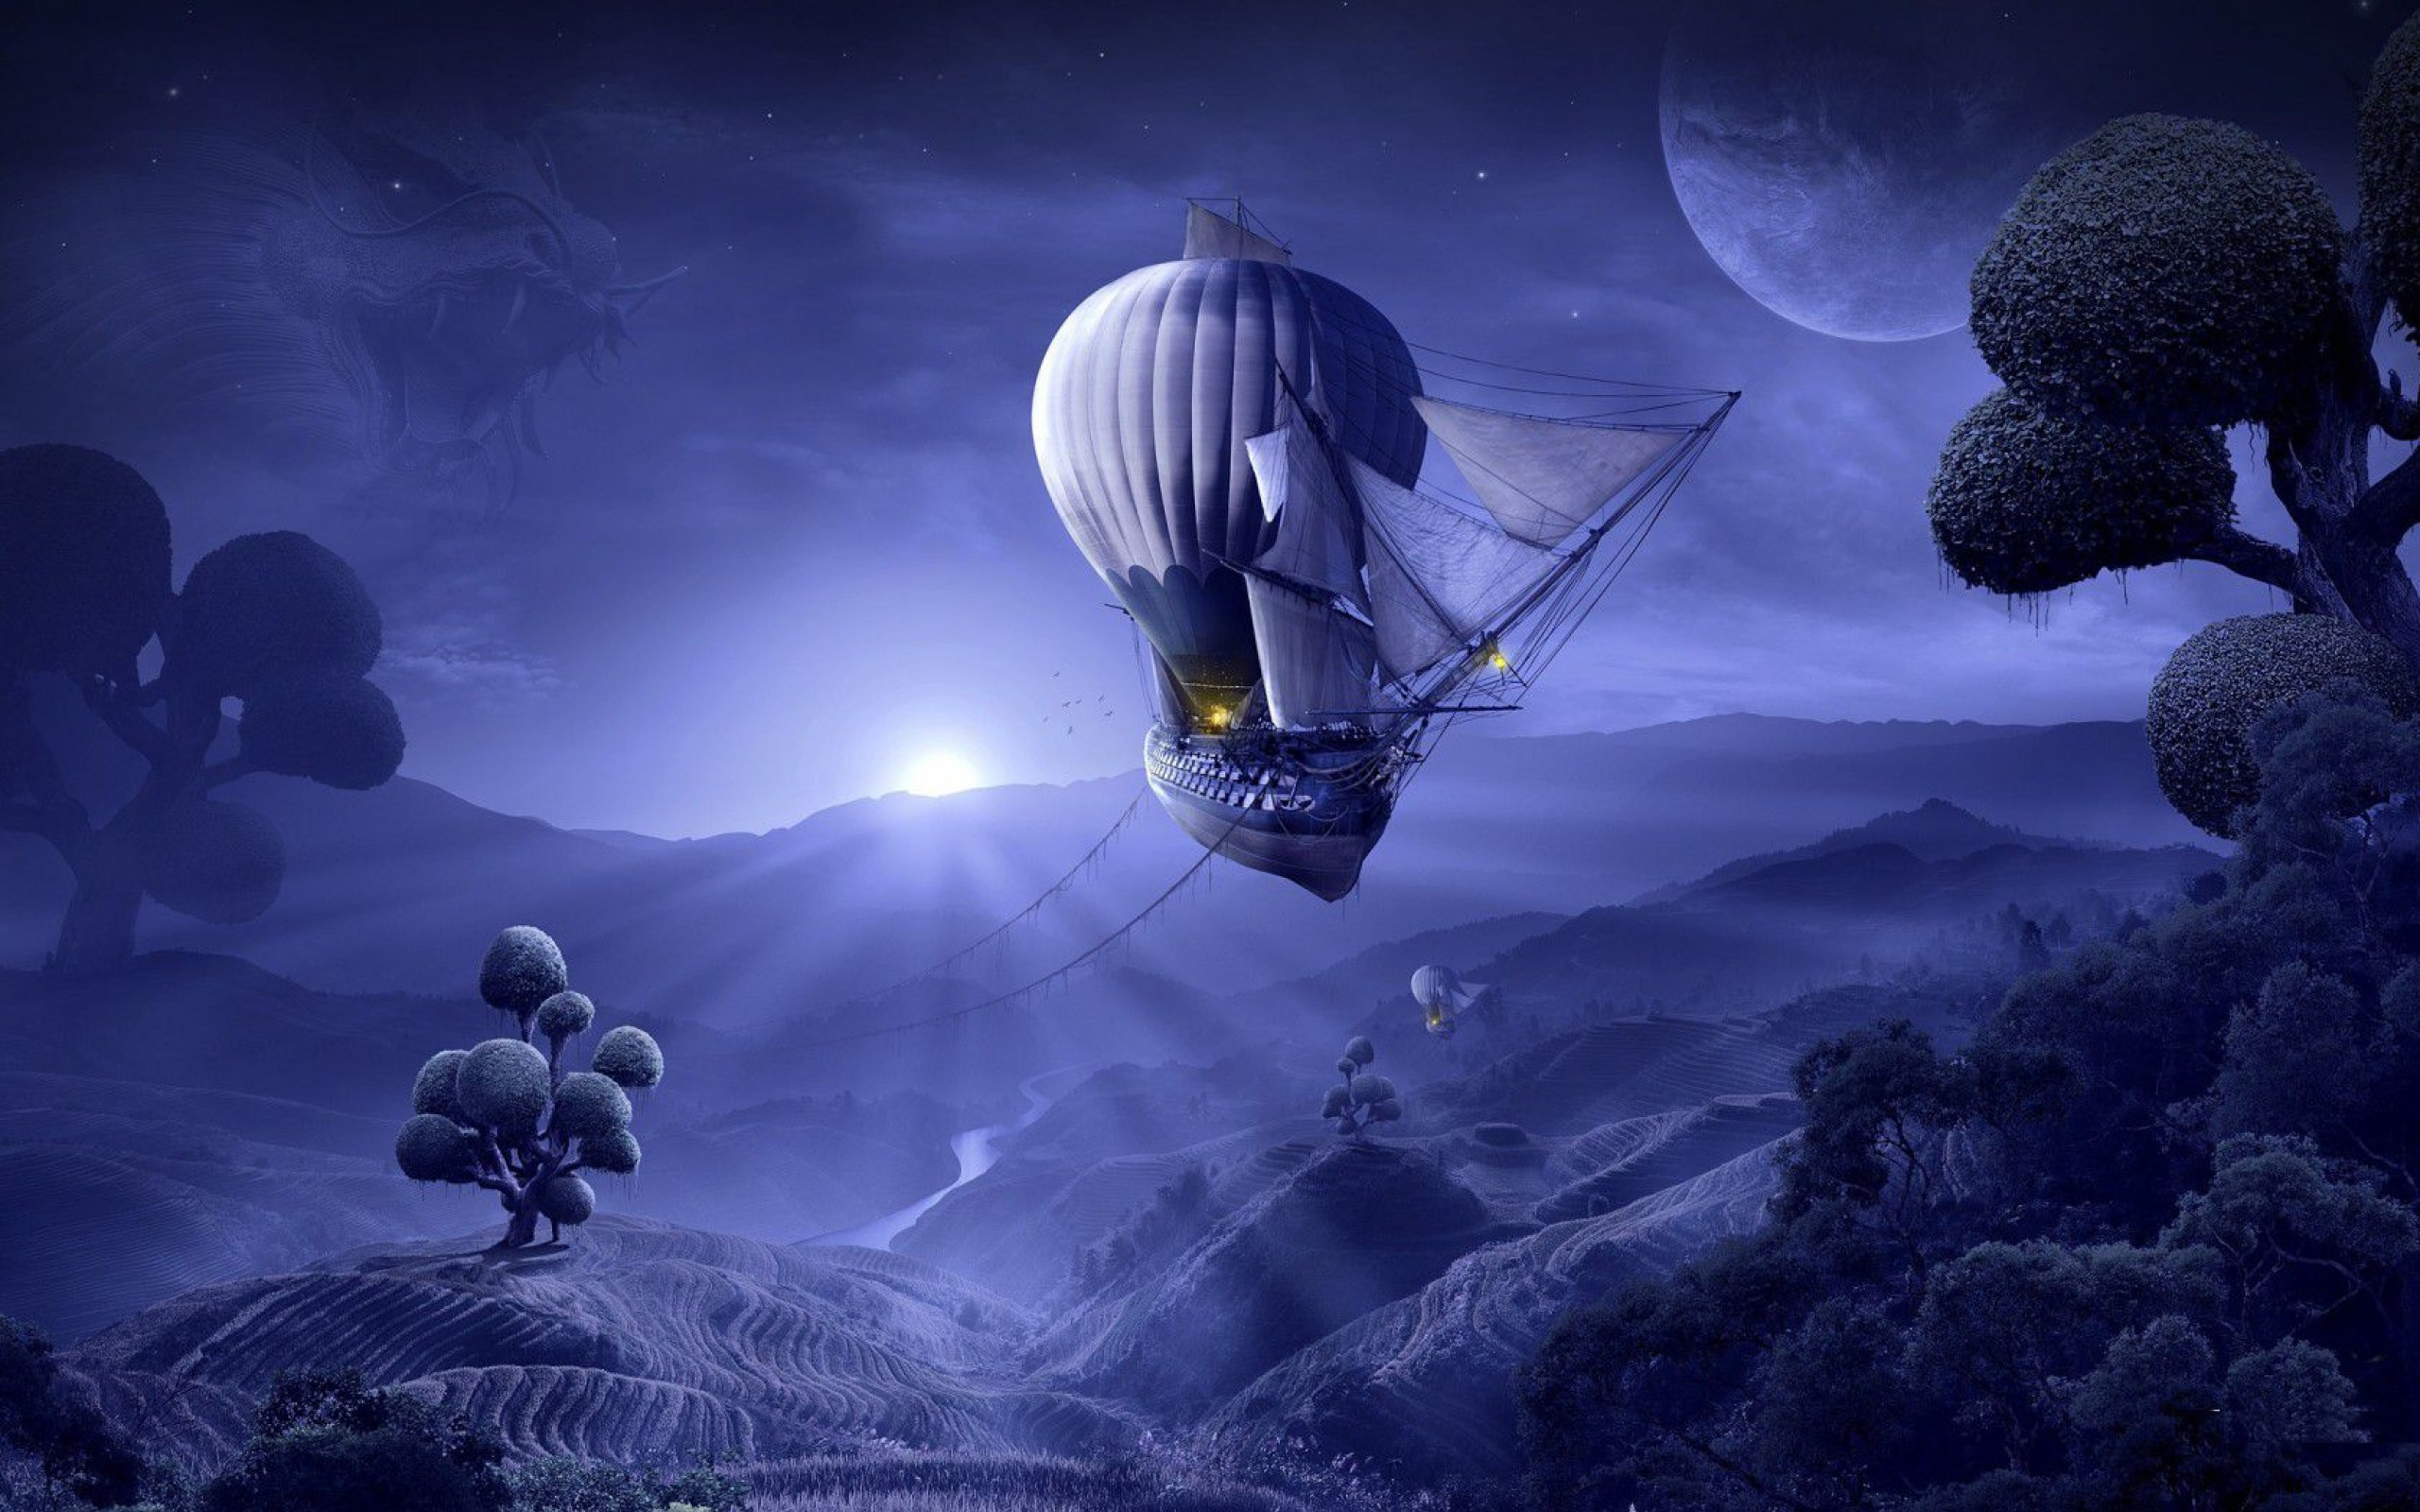 Space Mission wallpapers Space Mission stock photos 2560x1600